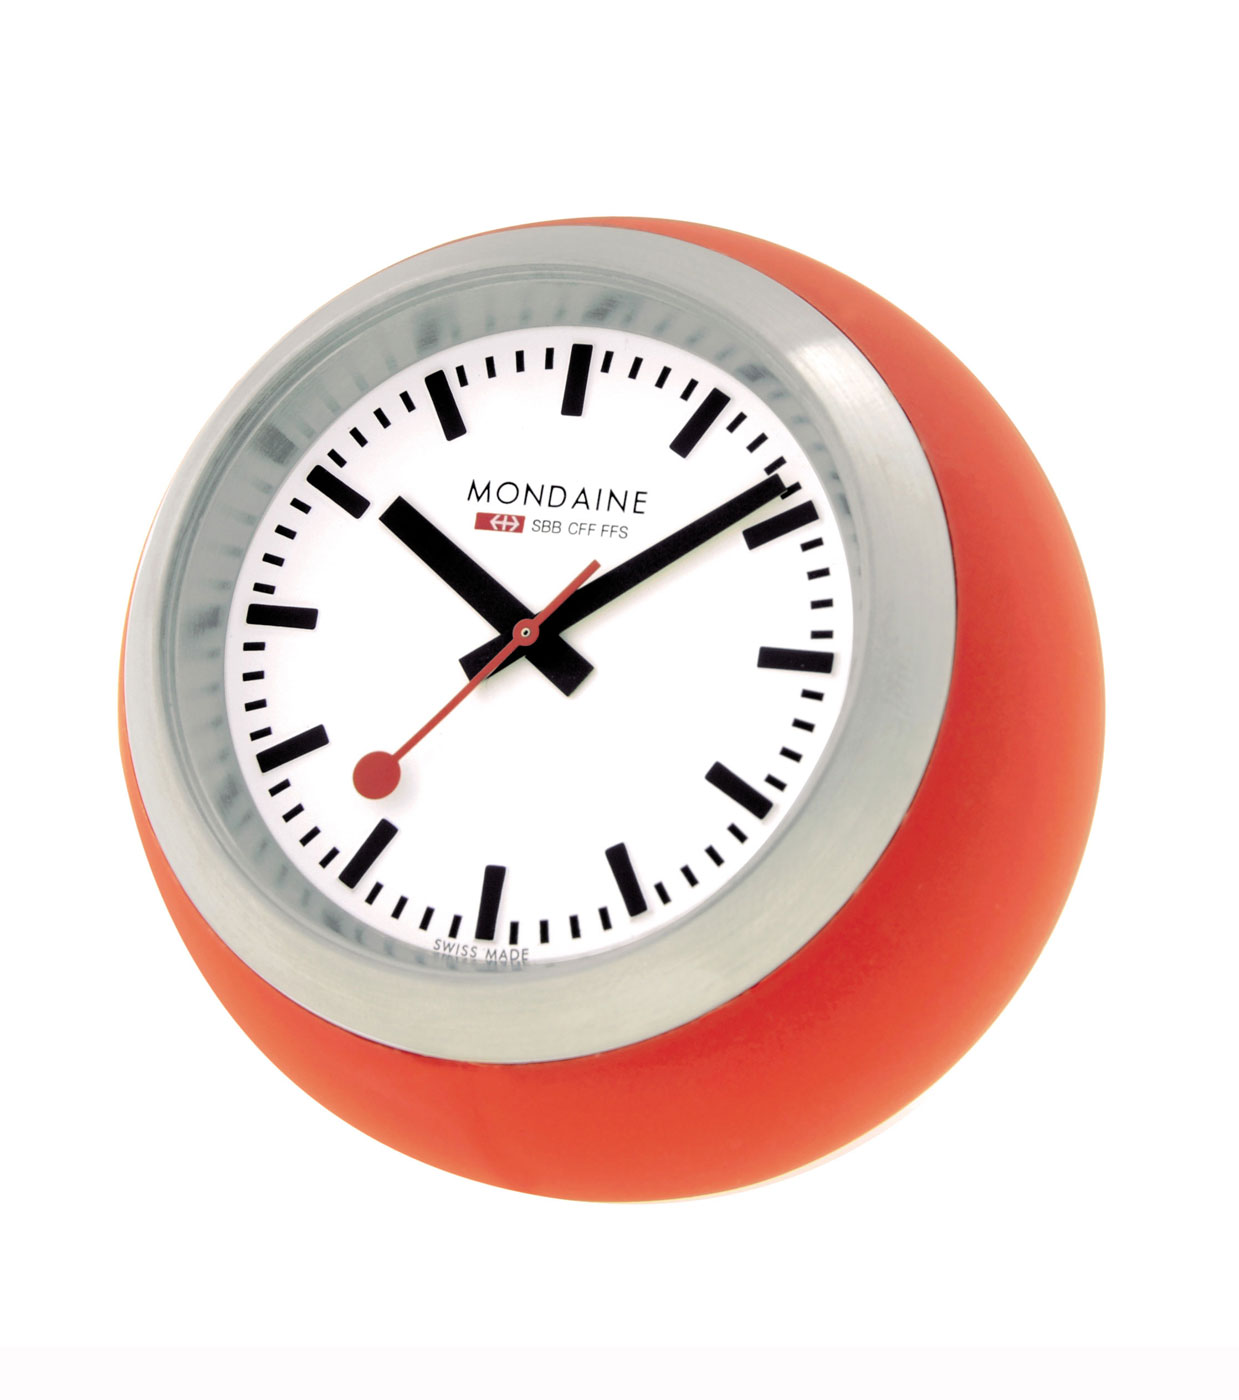 Mondaine wall clocks table clock - Mondaine wall clock cm ...